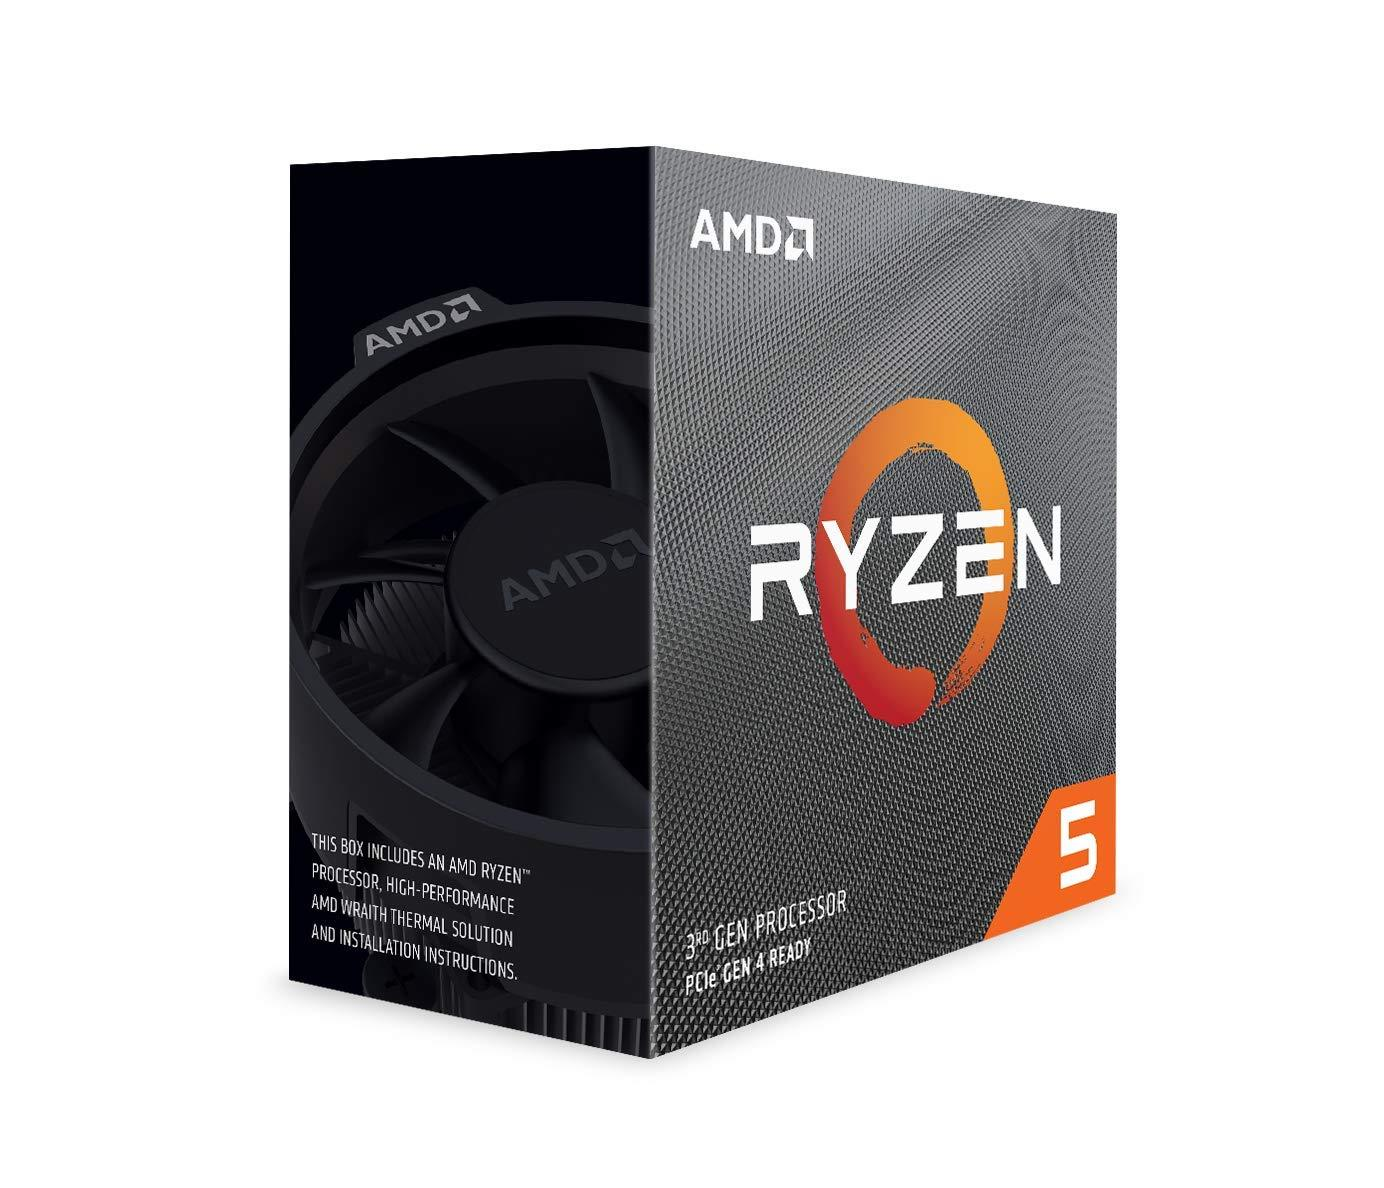 AMD Ryzen 5 3600, 6 Core, 12 Thread, 4.0 GHz - AM4 CPU